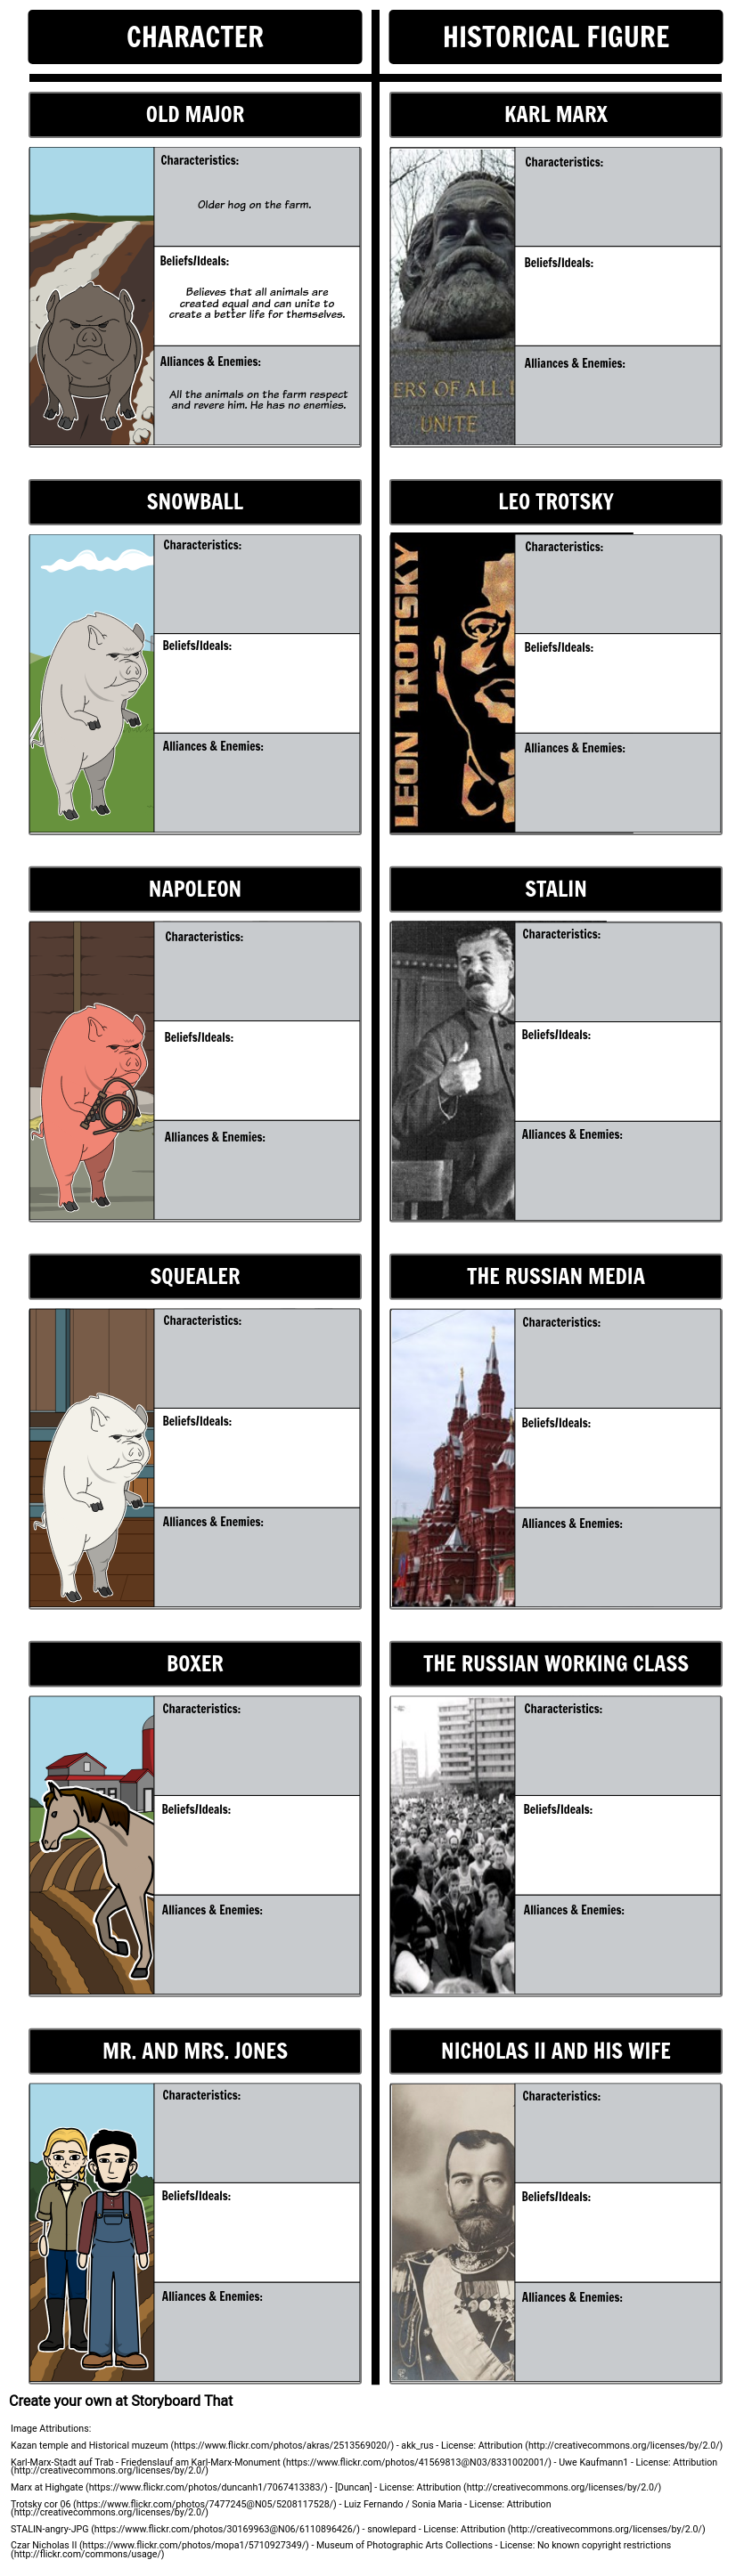 Mapping Animal Farm Characters